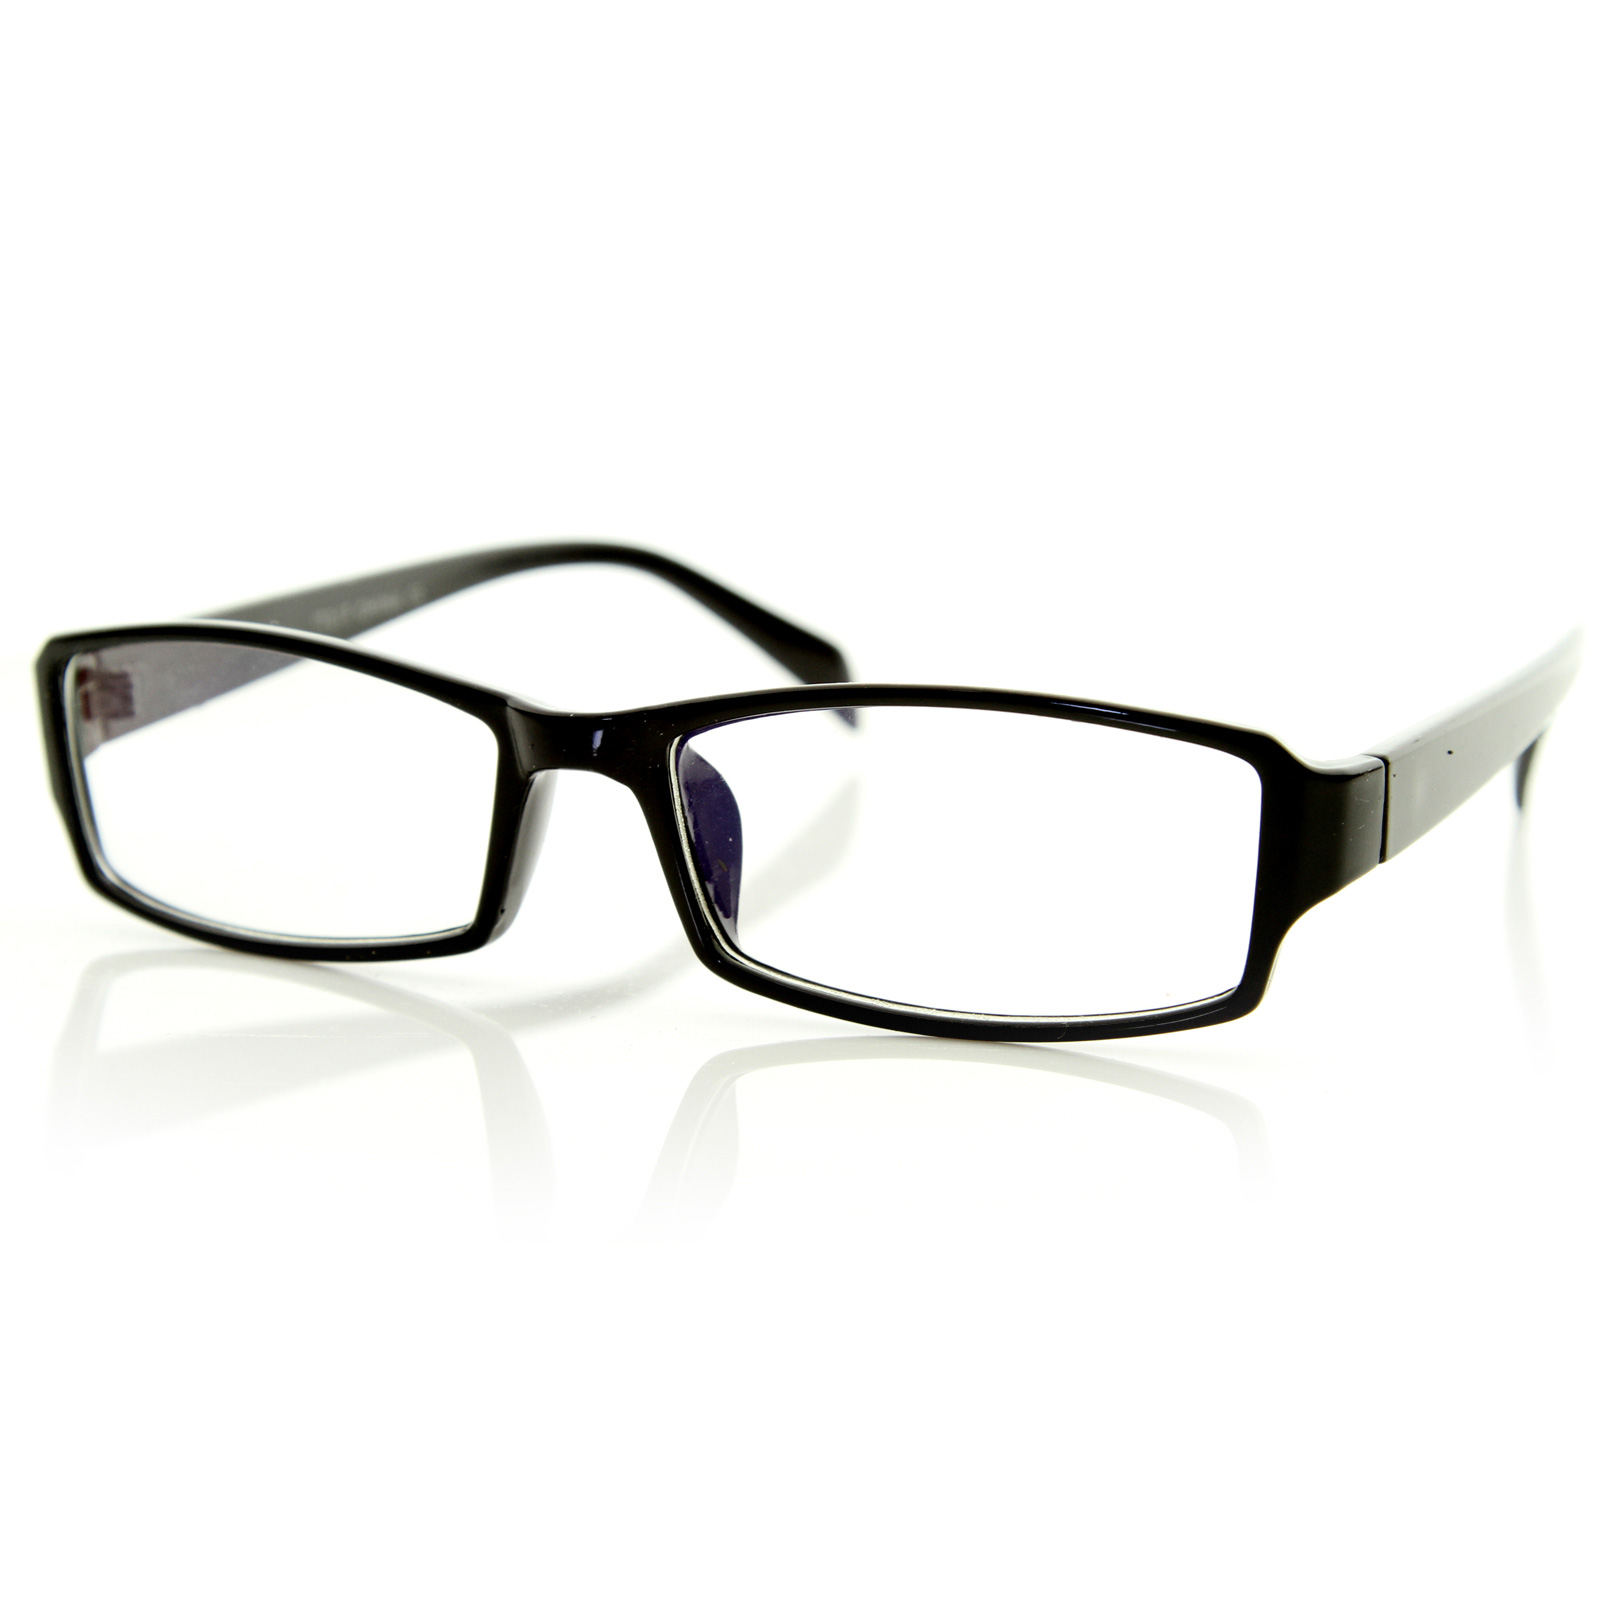 Clear Framed Fashion Glasses : Modern Rectangular Basic Frame Clear Lens Fashion Small ...